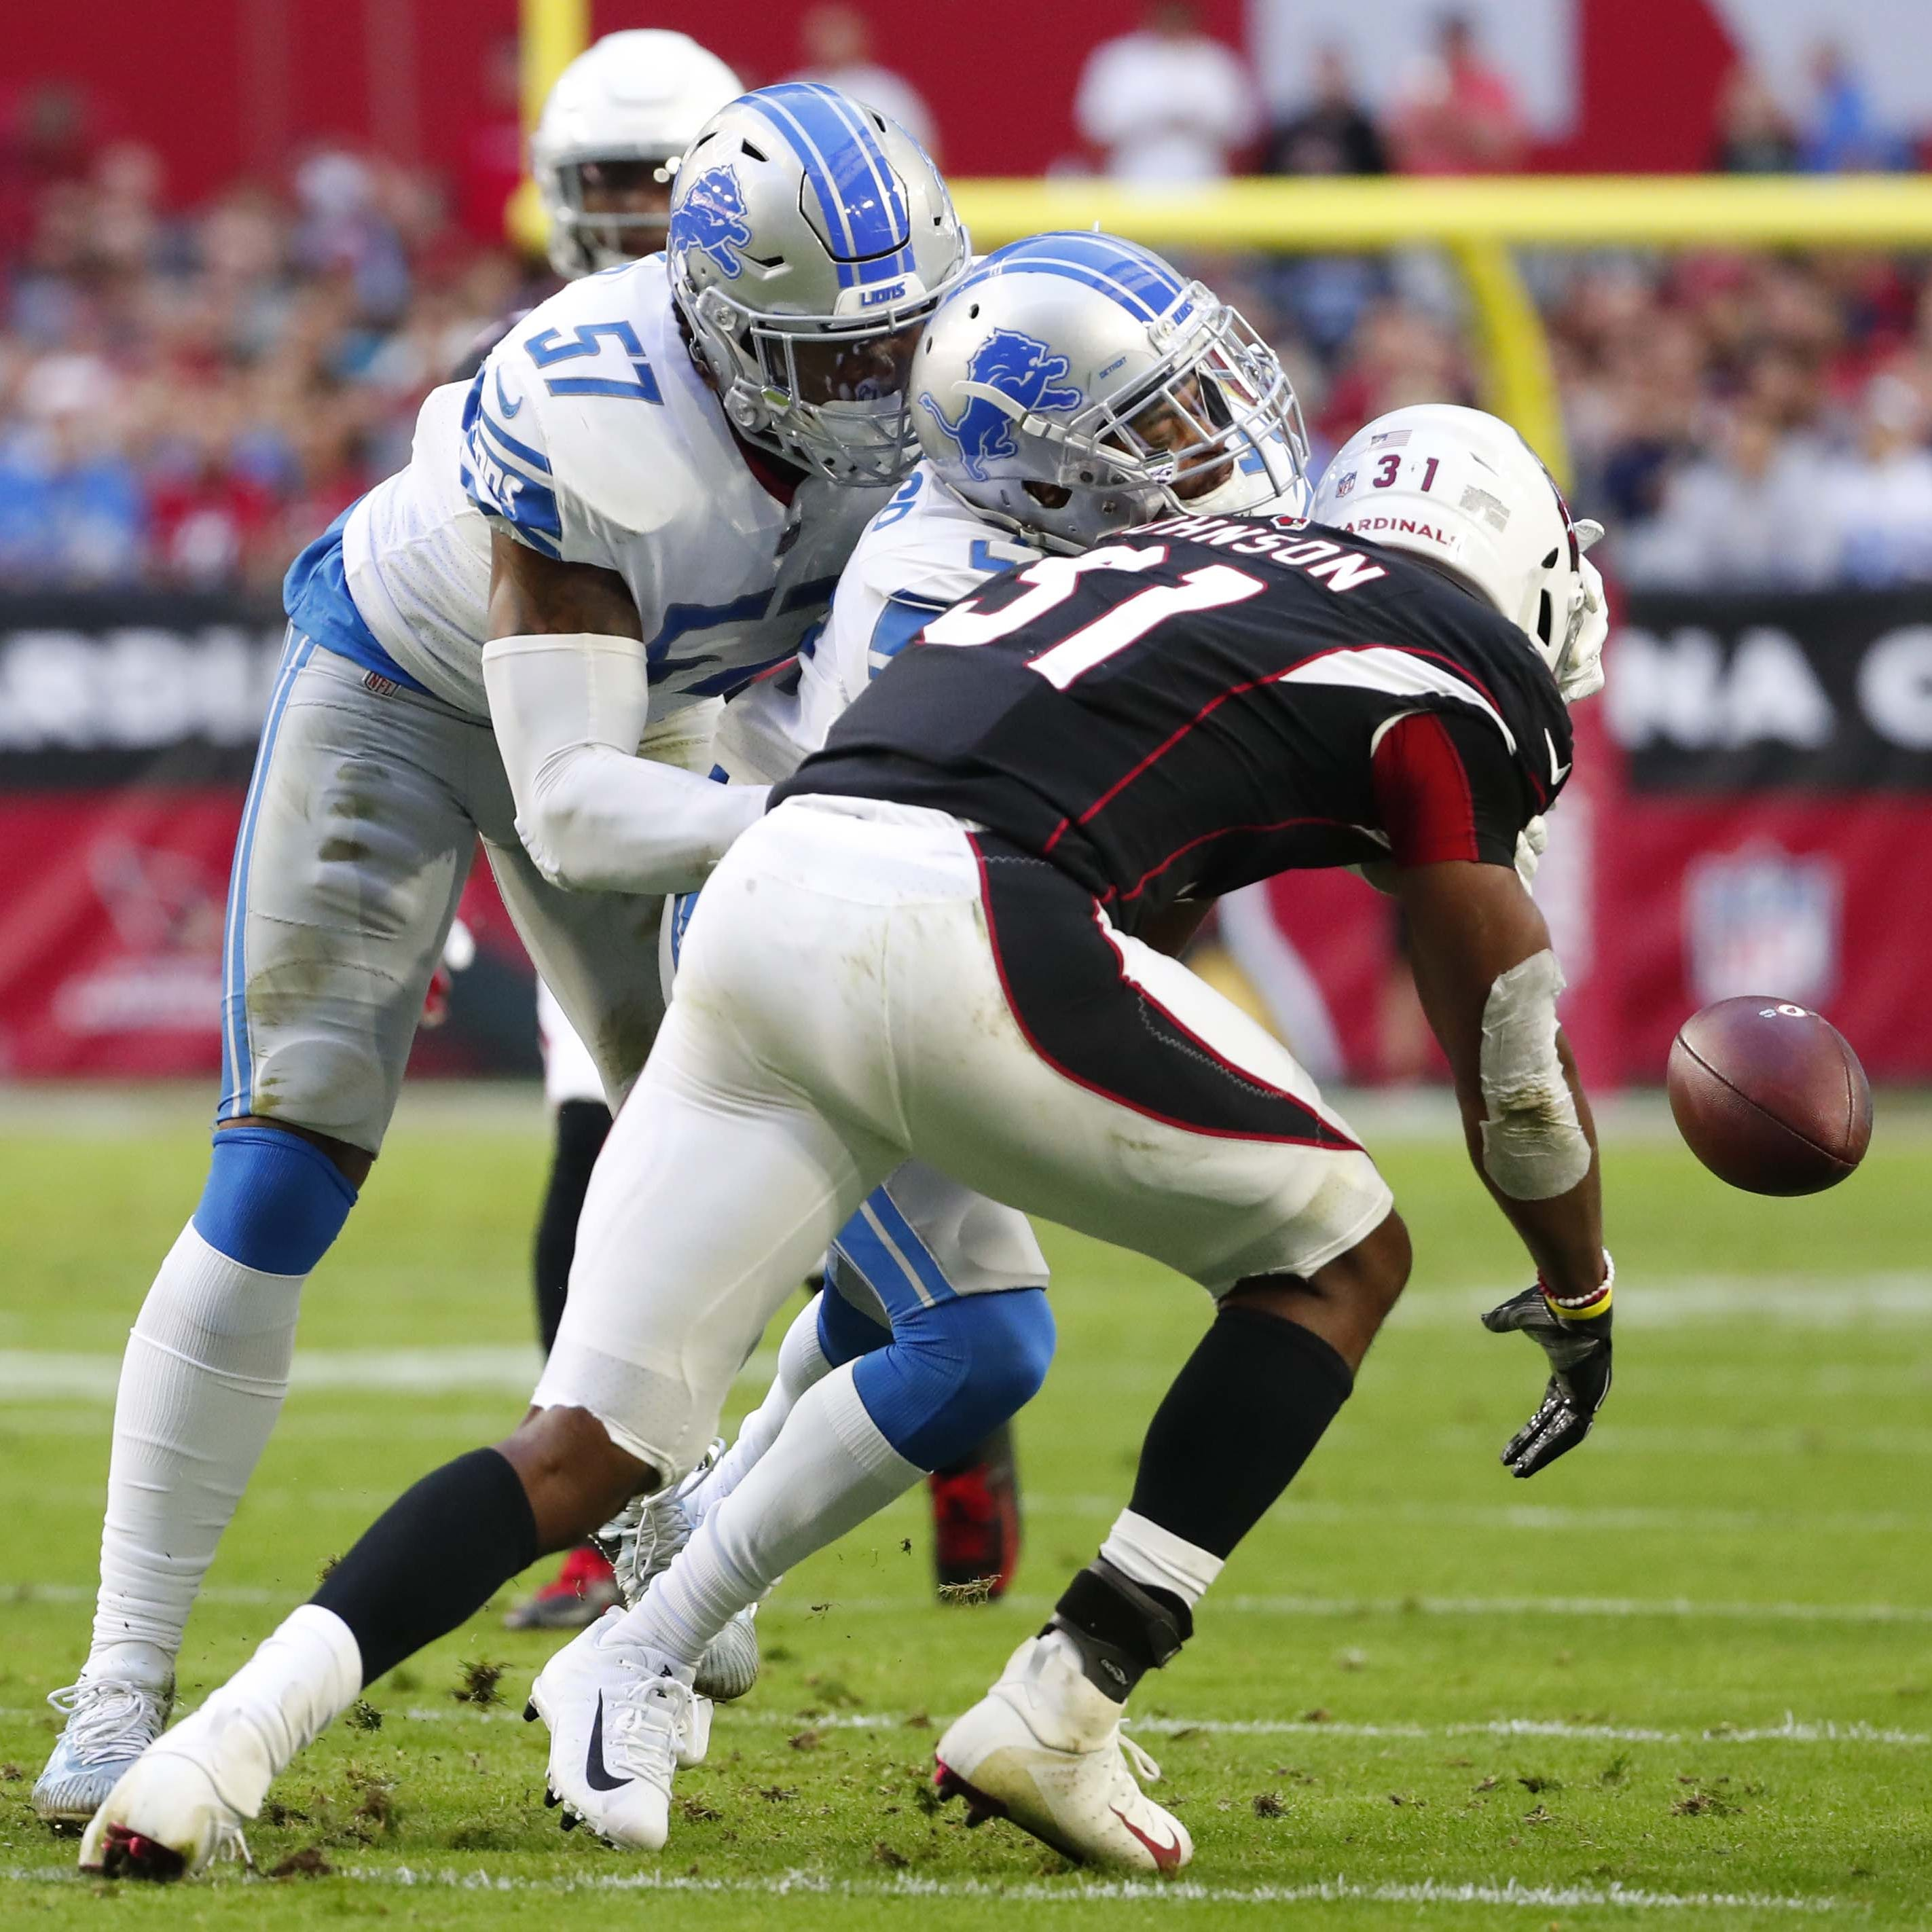 Instant replay: Cardinals' offense fails to show up in lackluster loss to Lions